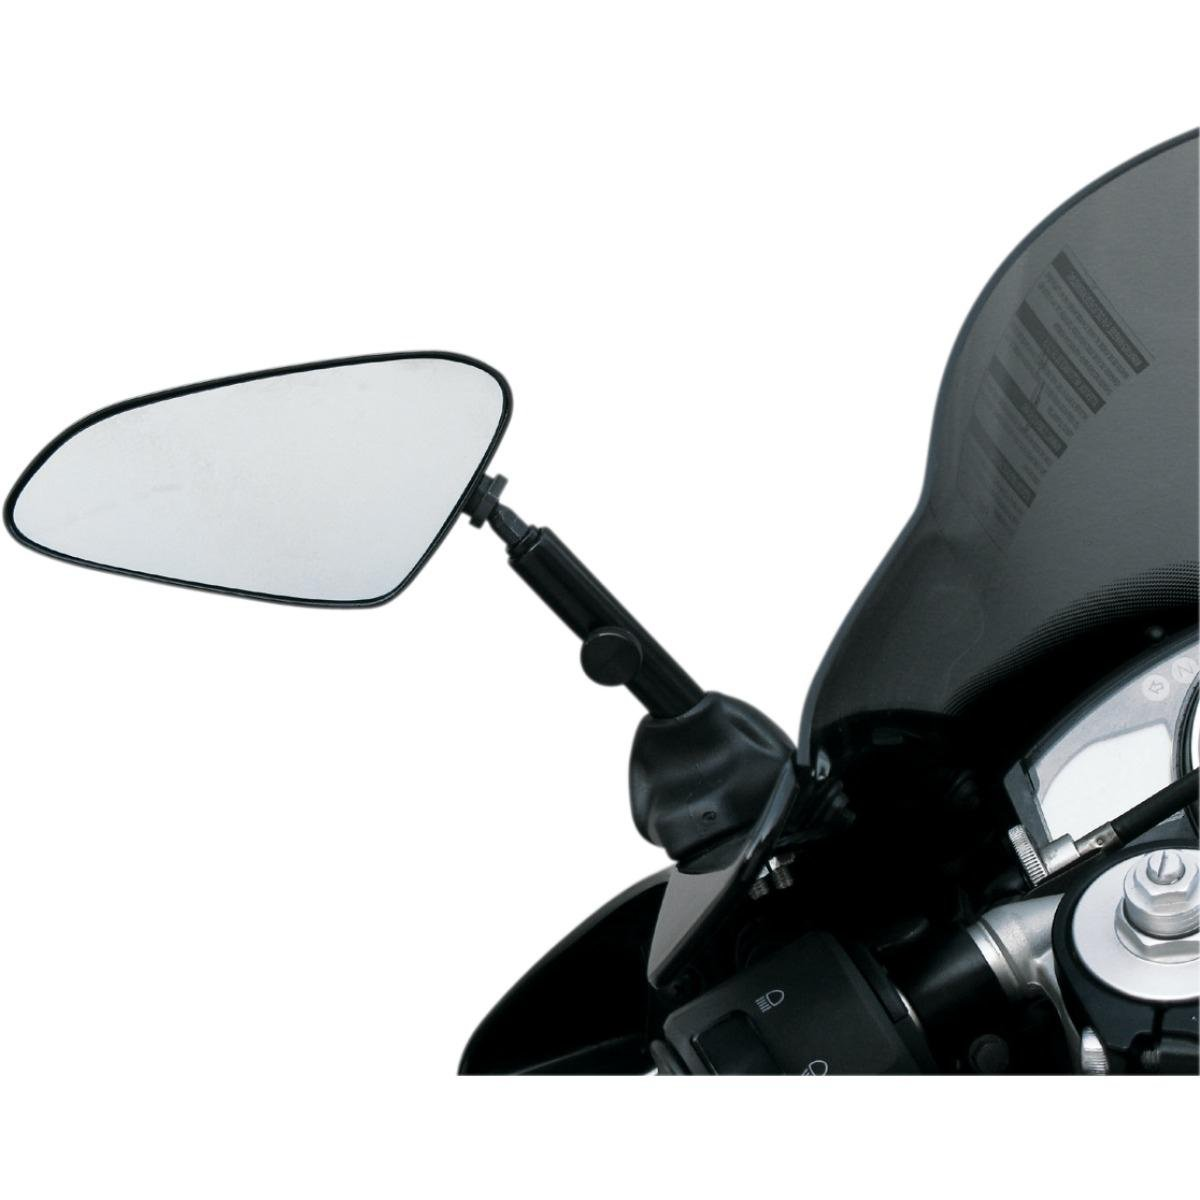 Targa Adjustable Sportbike Mirror Blue for Honda Kawasaki SUZ Yamaha by Targa